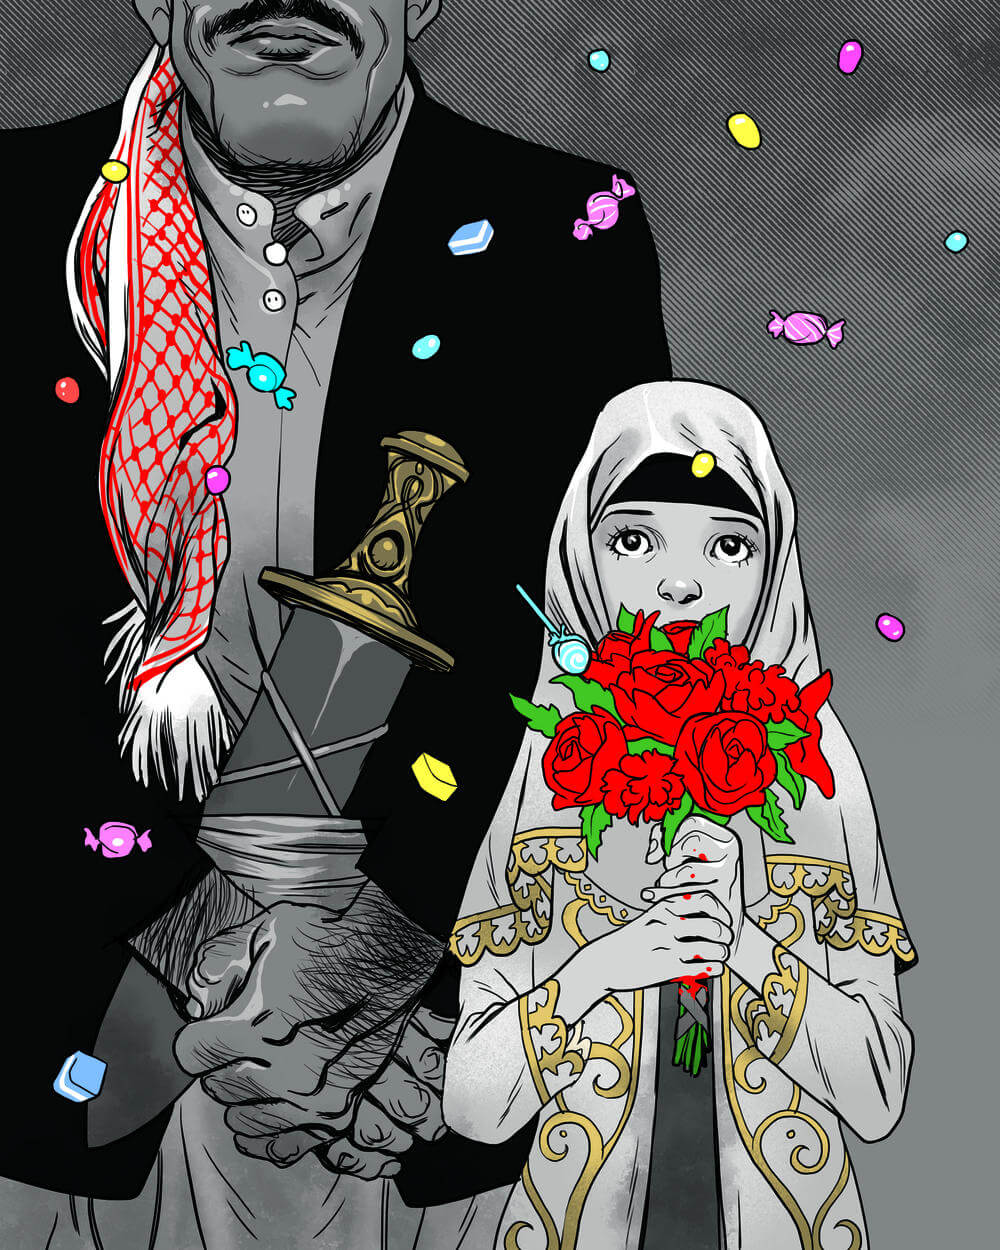 asaf hanuka illustration 3